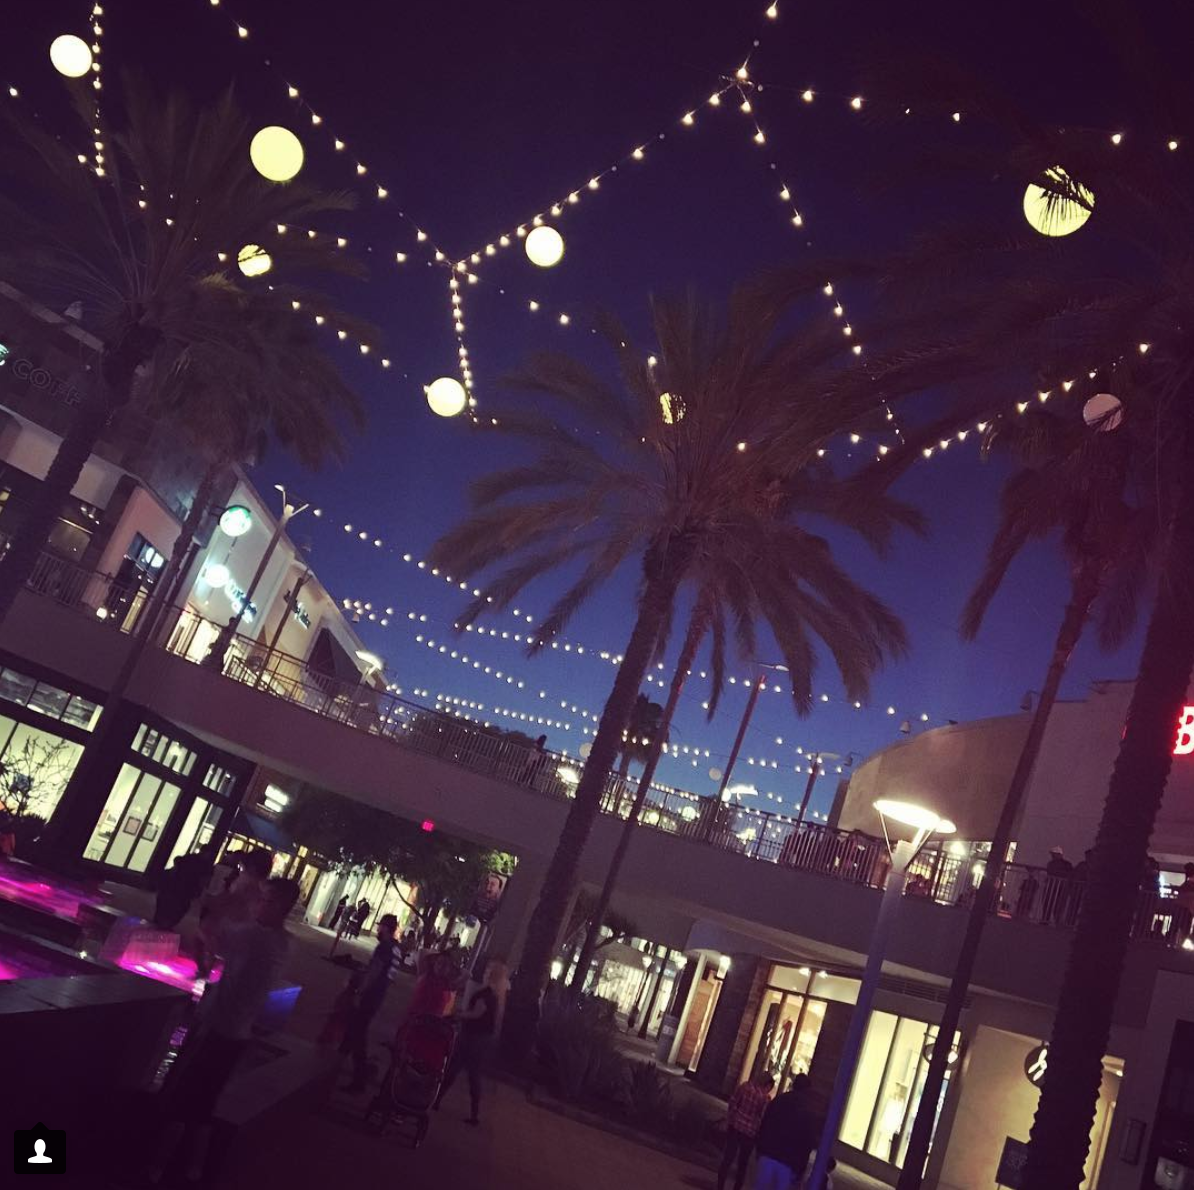 Del Amo Shopping Center